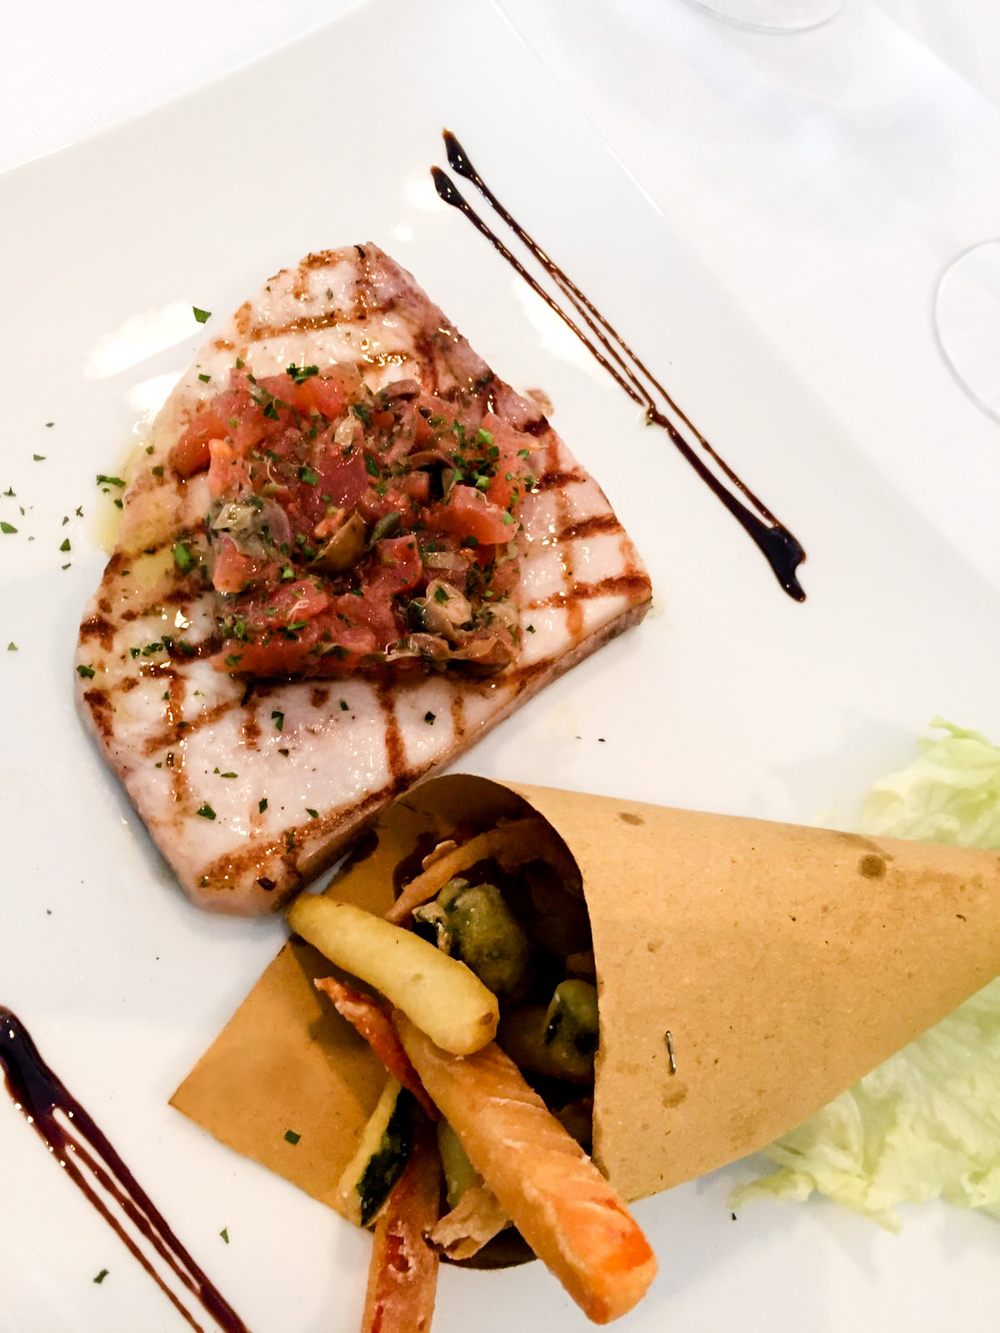 Special spring main: Grilled sword fish accompanied by a Mediterranean sauce